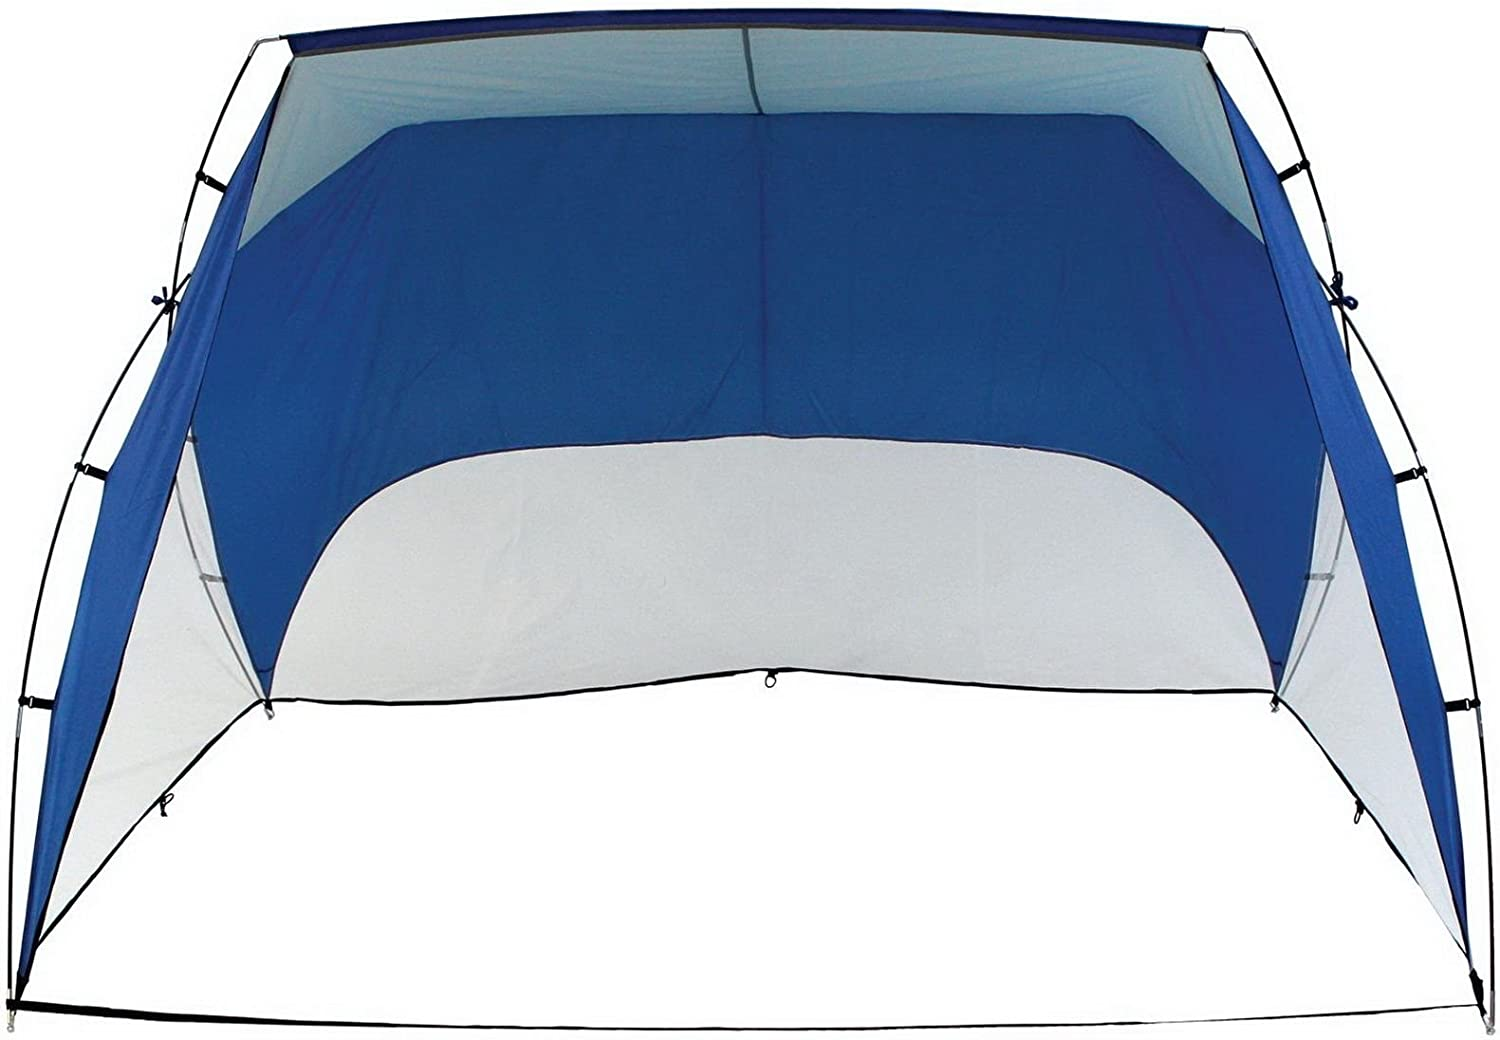 Waterproof Outdoor Camping Beach Awning Tent Sun Shade Shelter 3x2.9 Meters